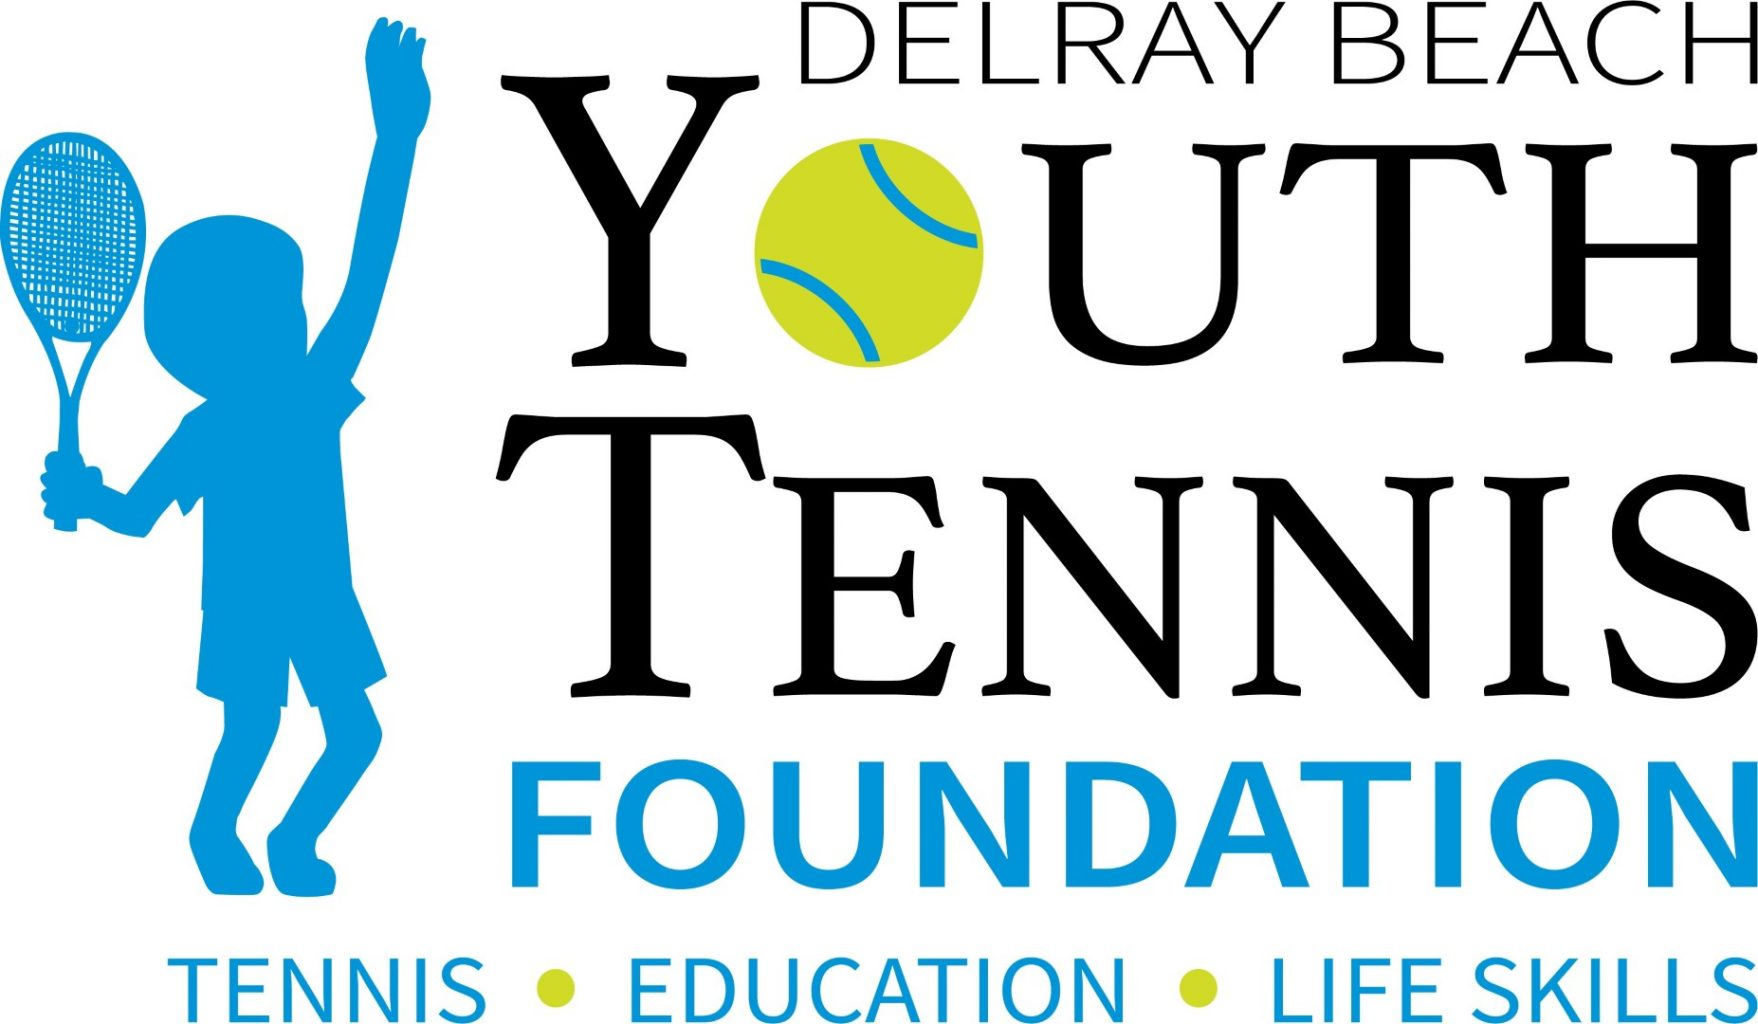 Del Ray Beach Youth Tennis Foundation